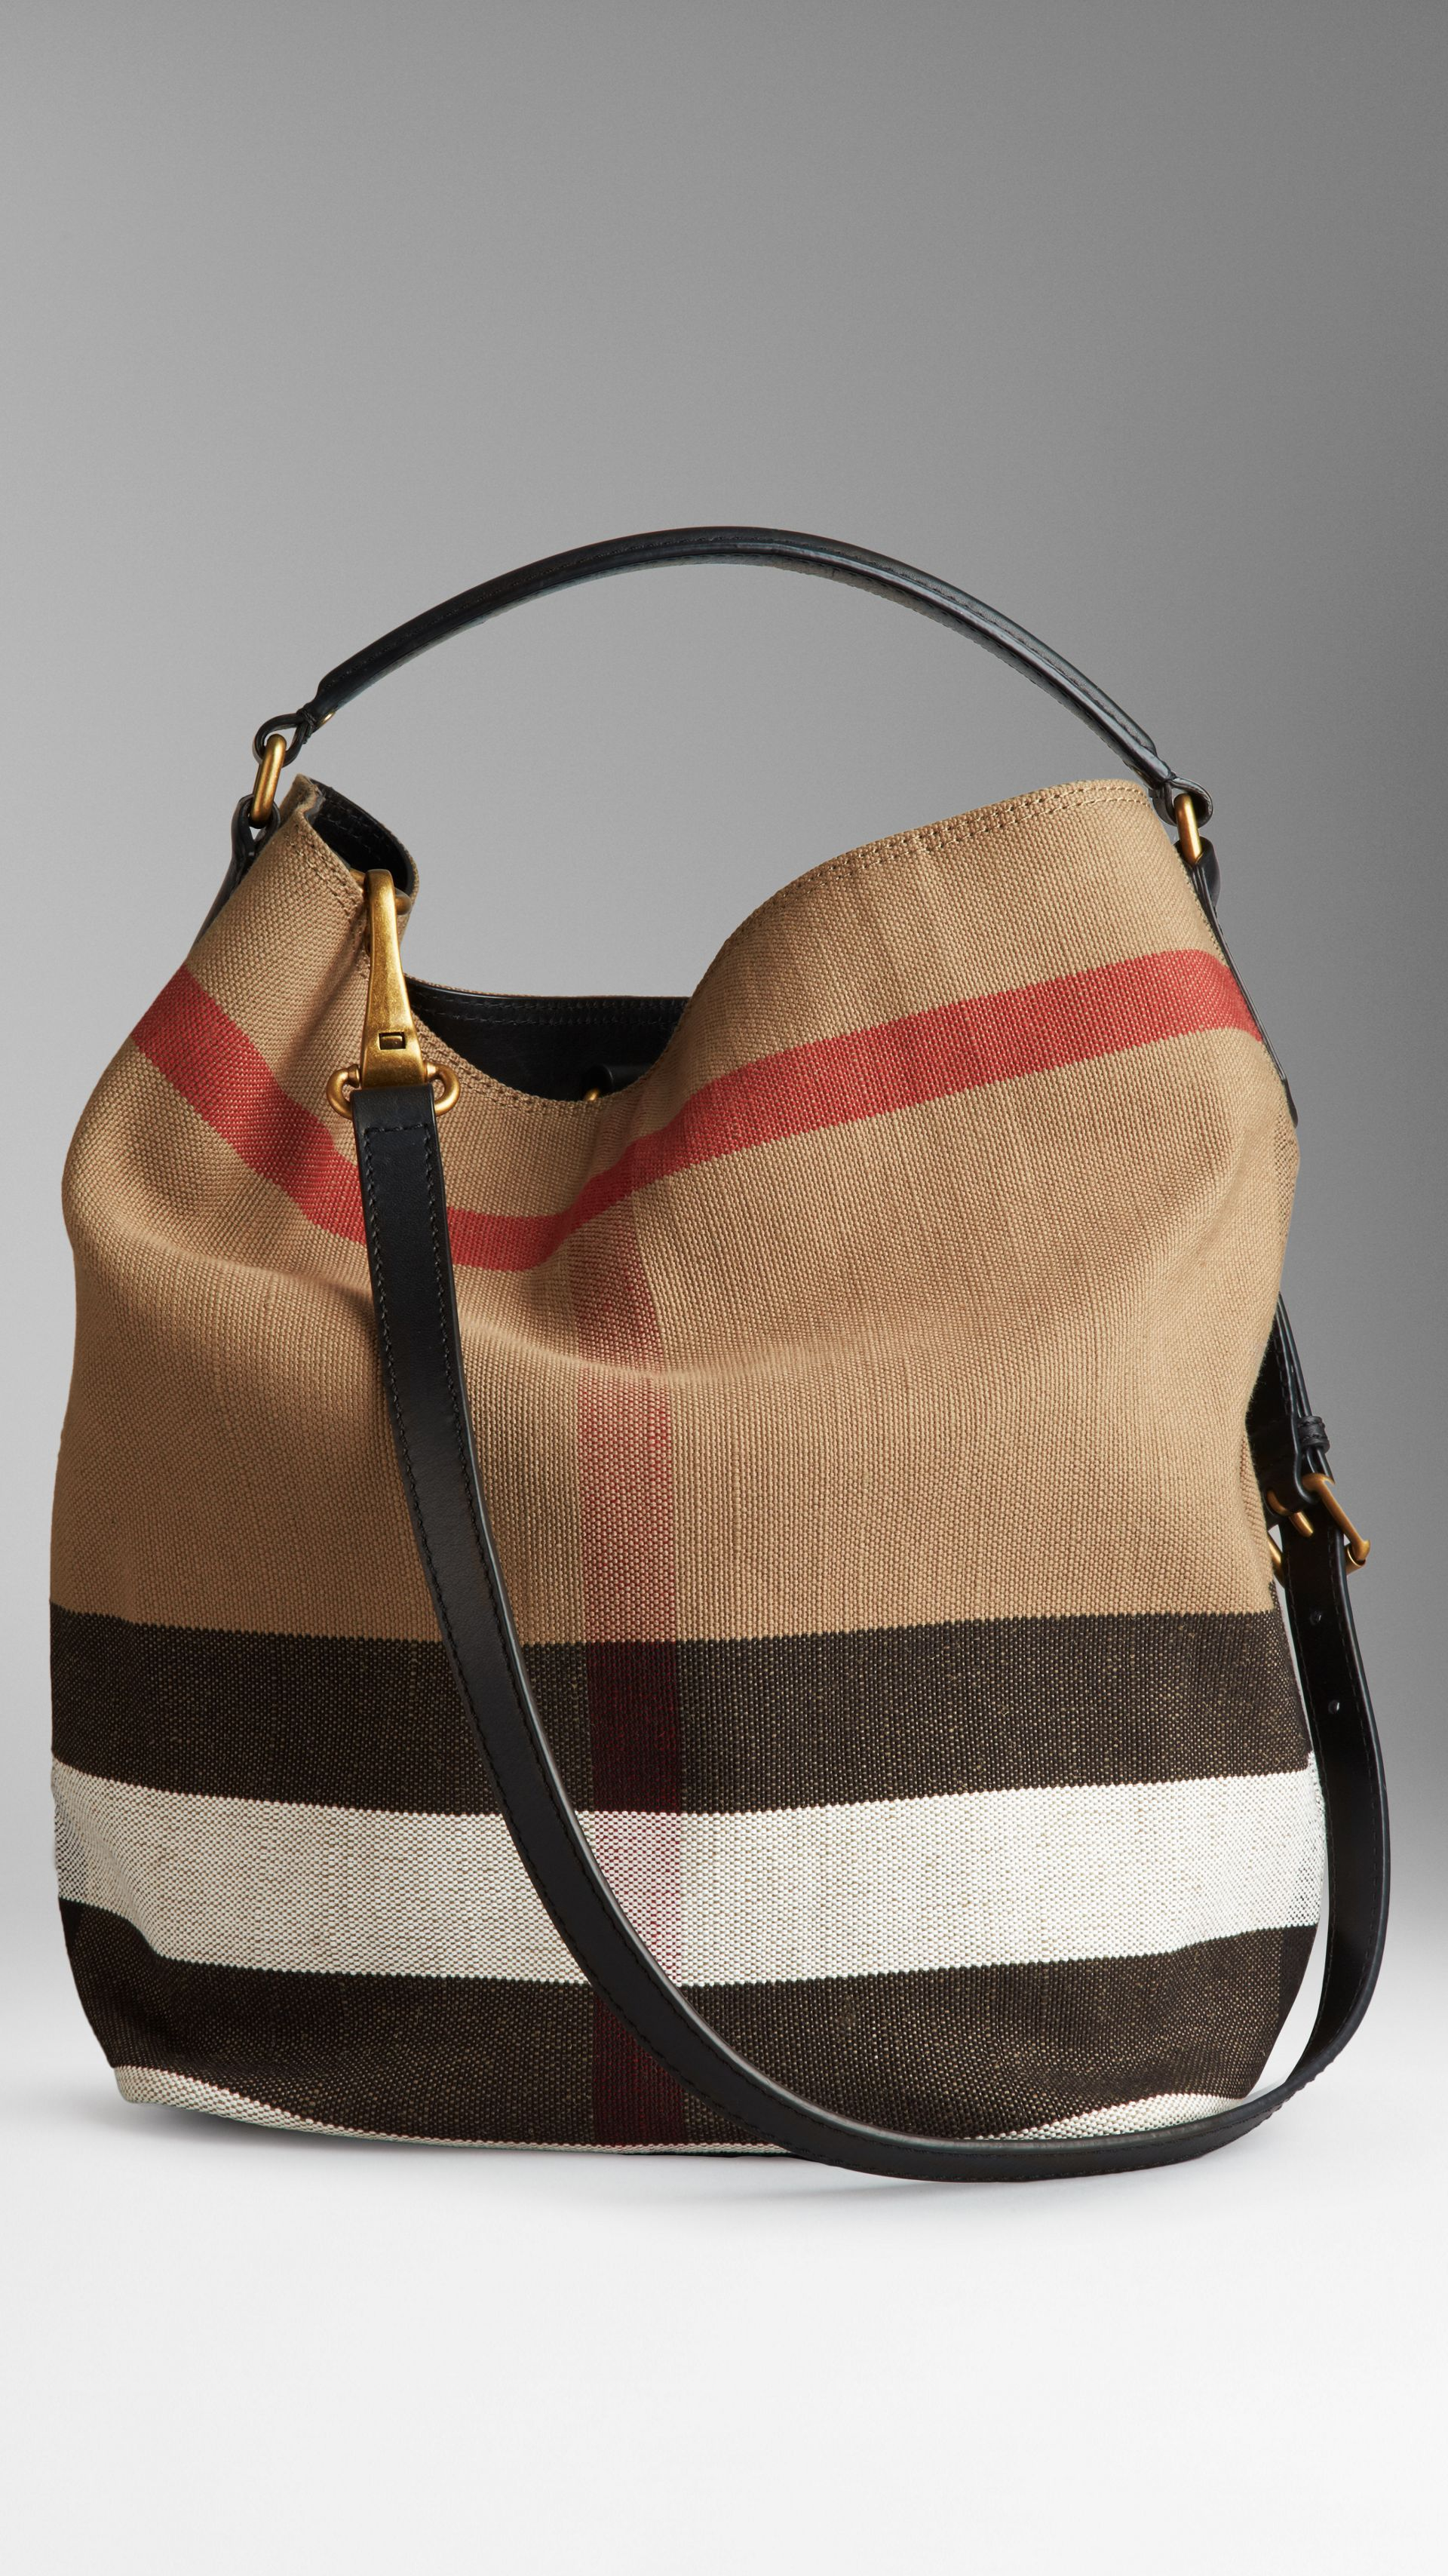 Medium Canvas Check Hobo Bag in Black - Women | Burberry - gallery image 2